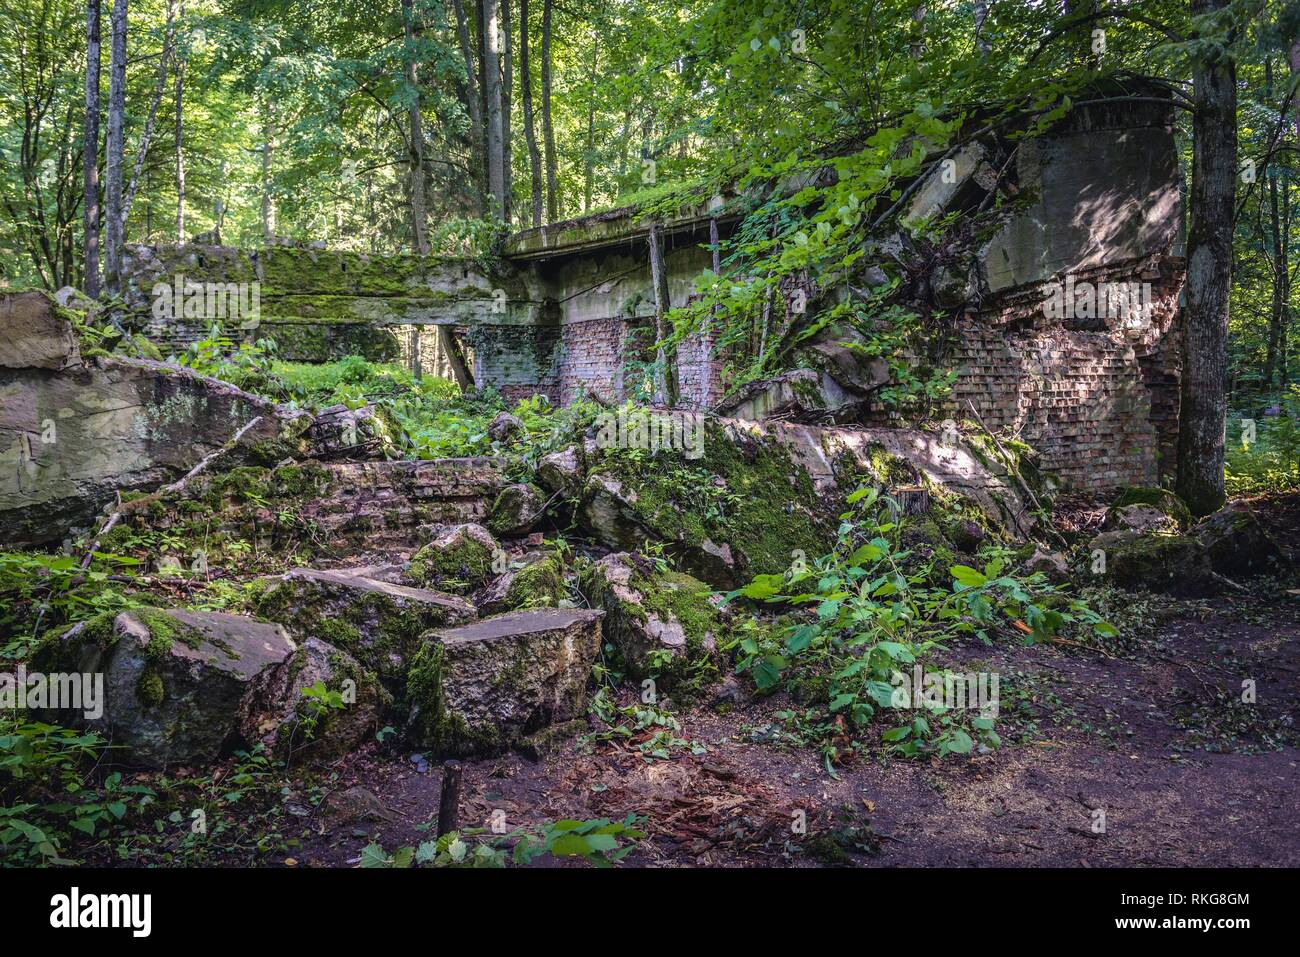 Collapsed building in Wolf's Lair - the headquarters of Adolf Hitler and the Nazi Supreme Command of Armed Forces in WW2 near Gierloz village, Poland. Stock Photo